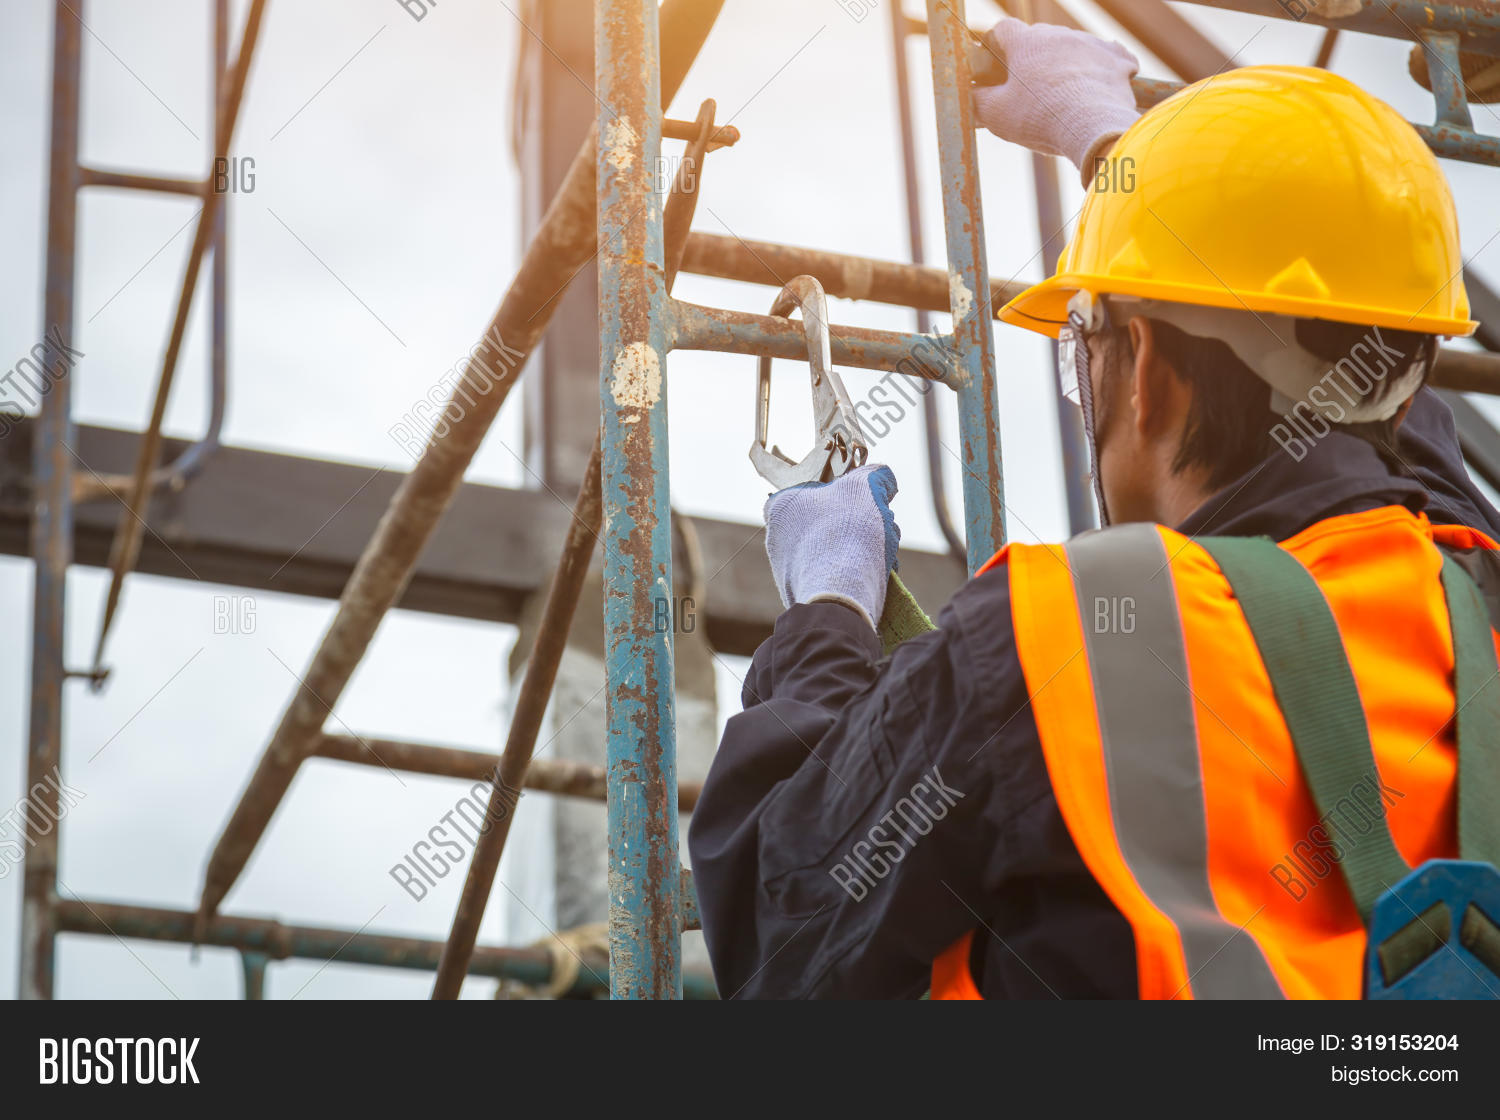 architecture,belt,builder,building,climb,concrete,construction,contractor,danger,dangerous,engineering,equipment,extreme,factory,harness,height,helmet,high,industrial,industry,instrument,job,labor,line,male,man,people,person,professional,protection,protective,risk,roof,roofer,safe,safety,scaffolding,security,site,stands,steel,structure,support,team,tool,training,uniform,work,worker